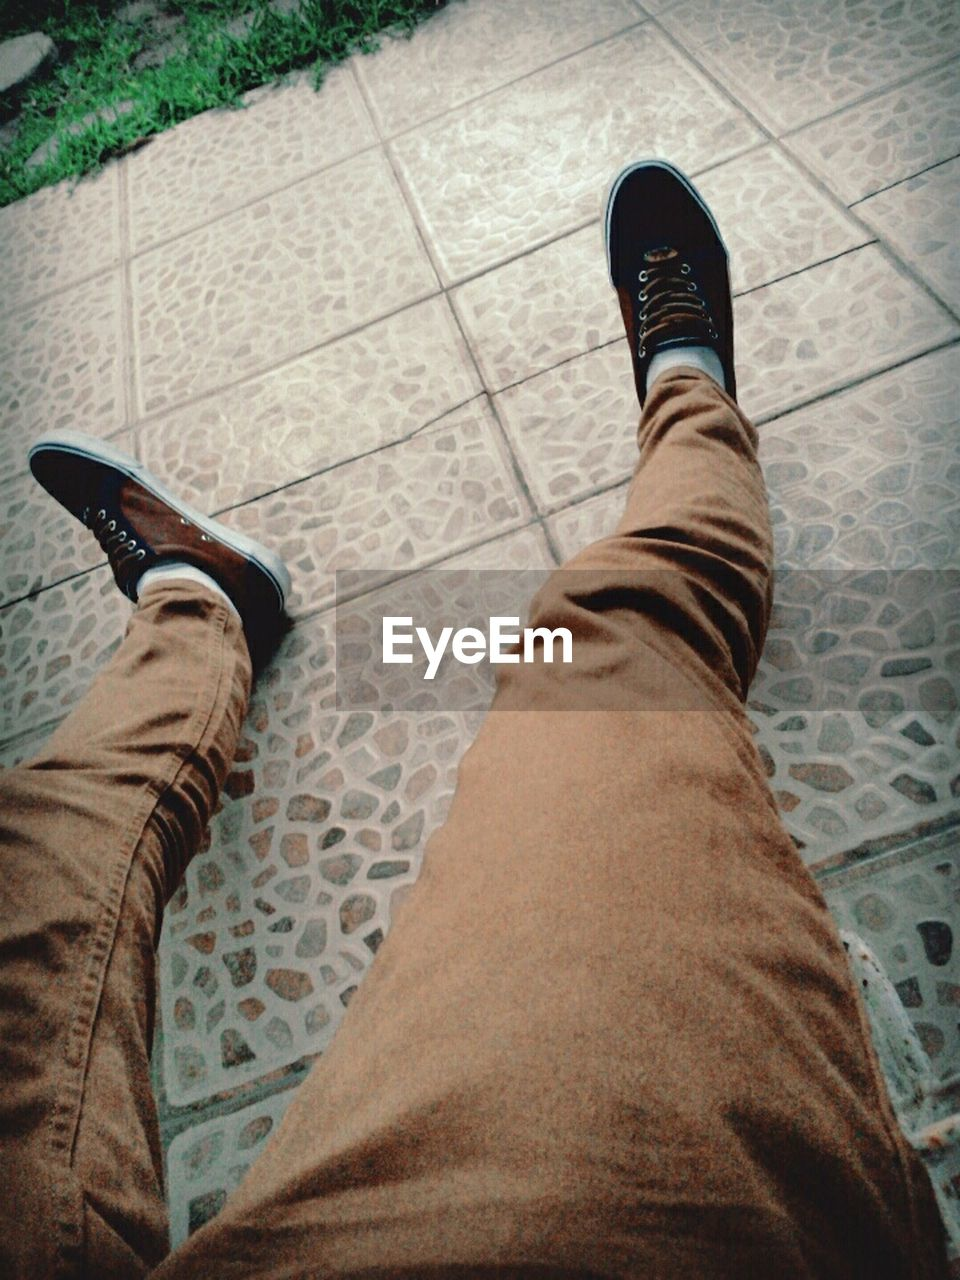 human leg, low section, personal perspective, real people, shoe, men, human body part, standing, high angle view, footpath, walking, lifestyles, outdoors, day, sidewalk, adult, people, adults only